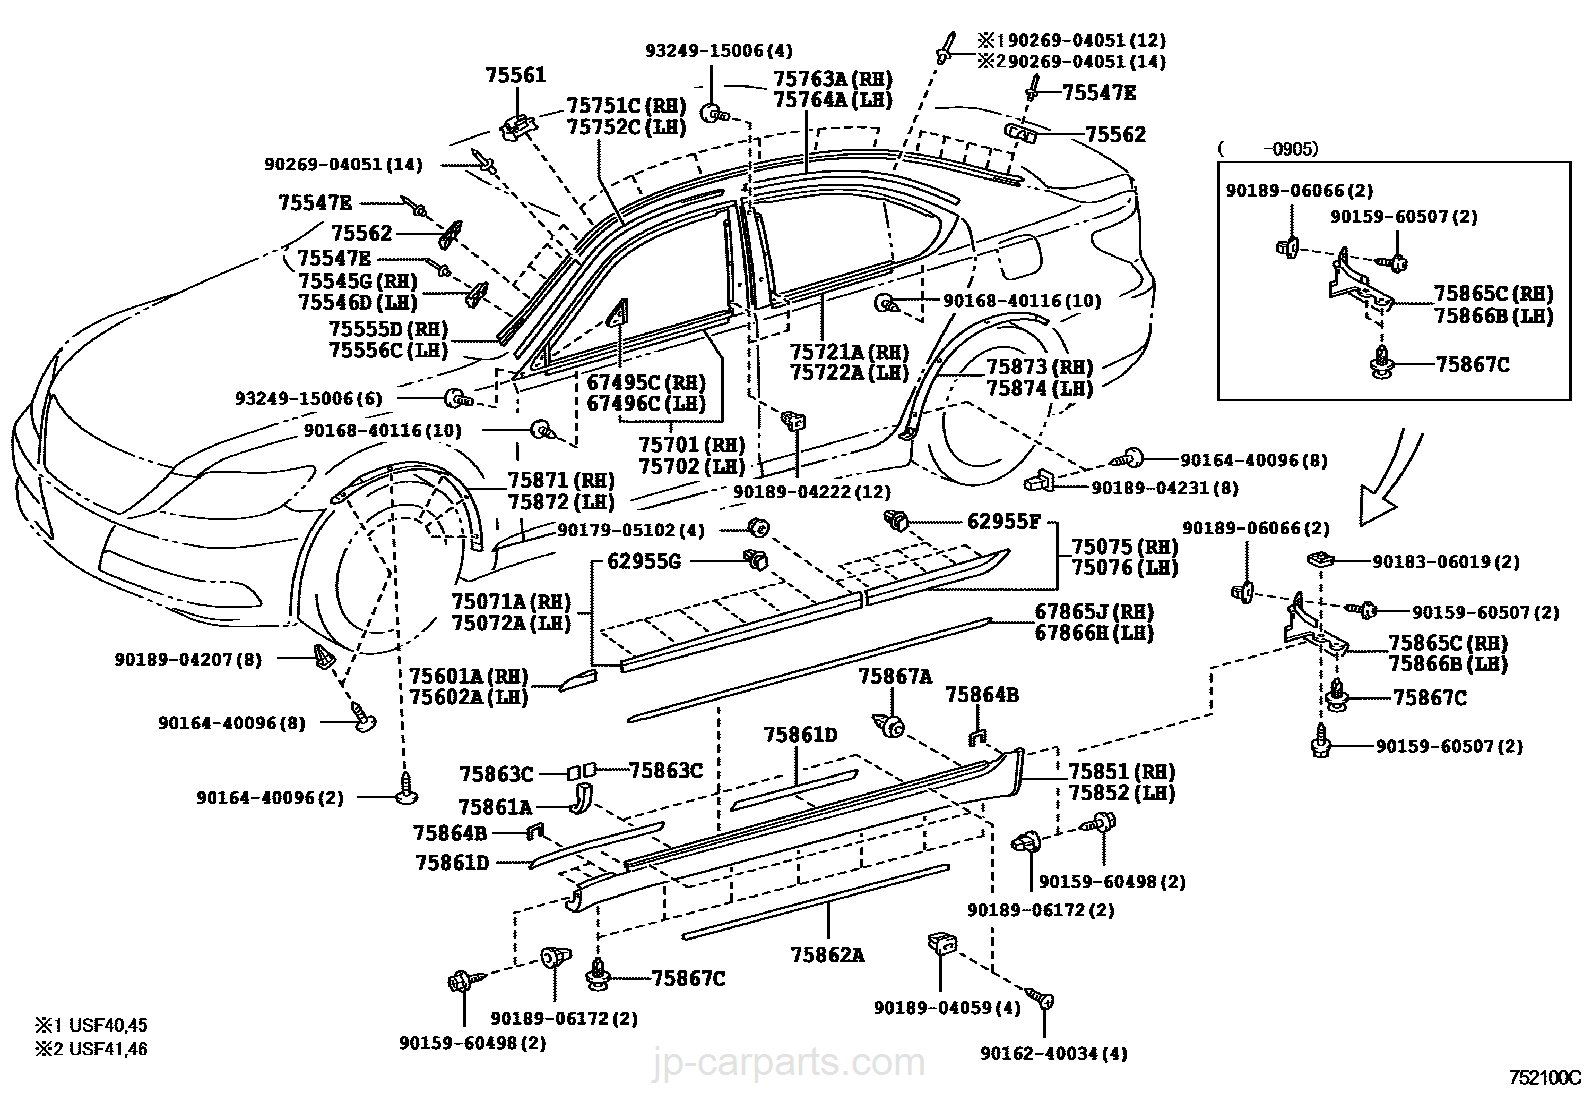 1969 Mustang Wiring Diagram further Showthread likewise 1361889 Vacuum Line R R On 1988 F150 302 5 0l likewise 2002 Mercury Cougar Parts Diagram further Harley Golf Cart Solenoid Wiring Diagram. on 1965 mercury starter relay wiring